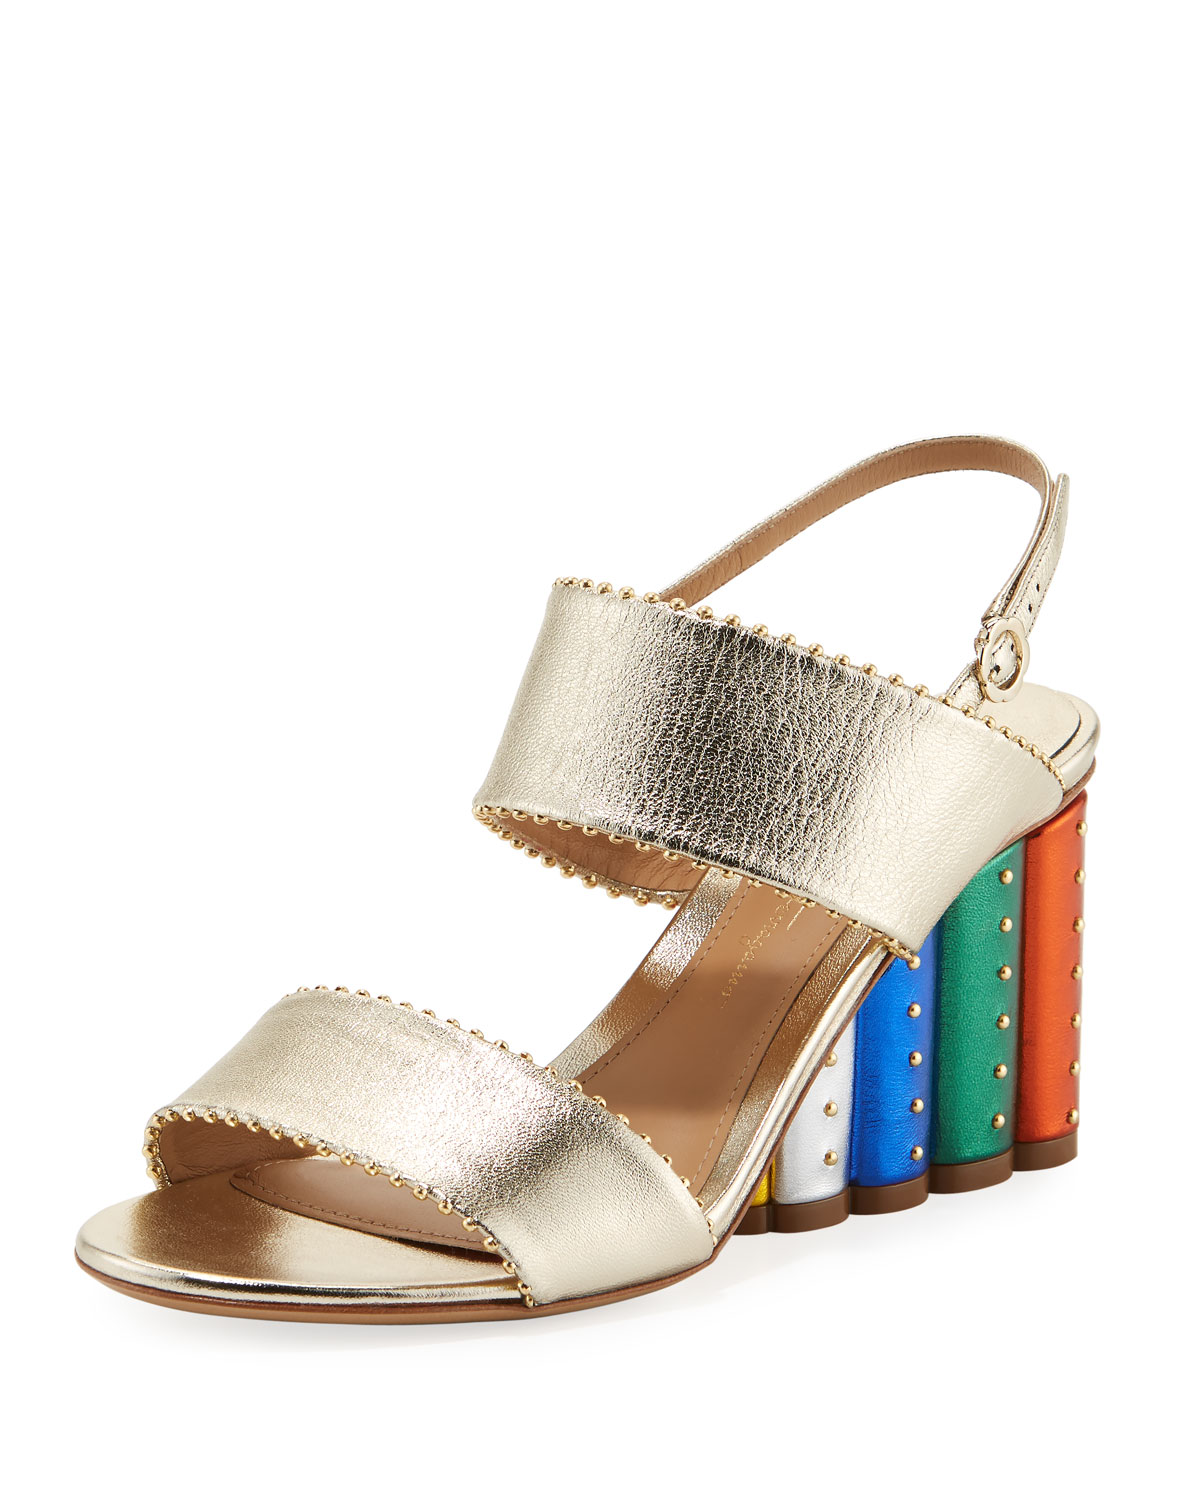 4ebb4361331 Salvatore Ferragamo Metallic City Sandal with Rainbow Heel